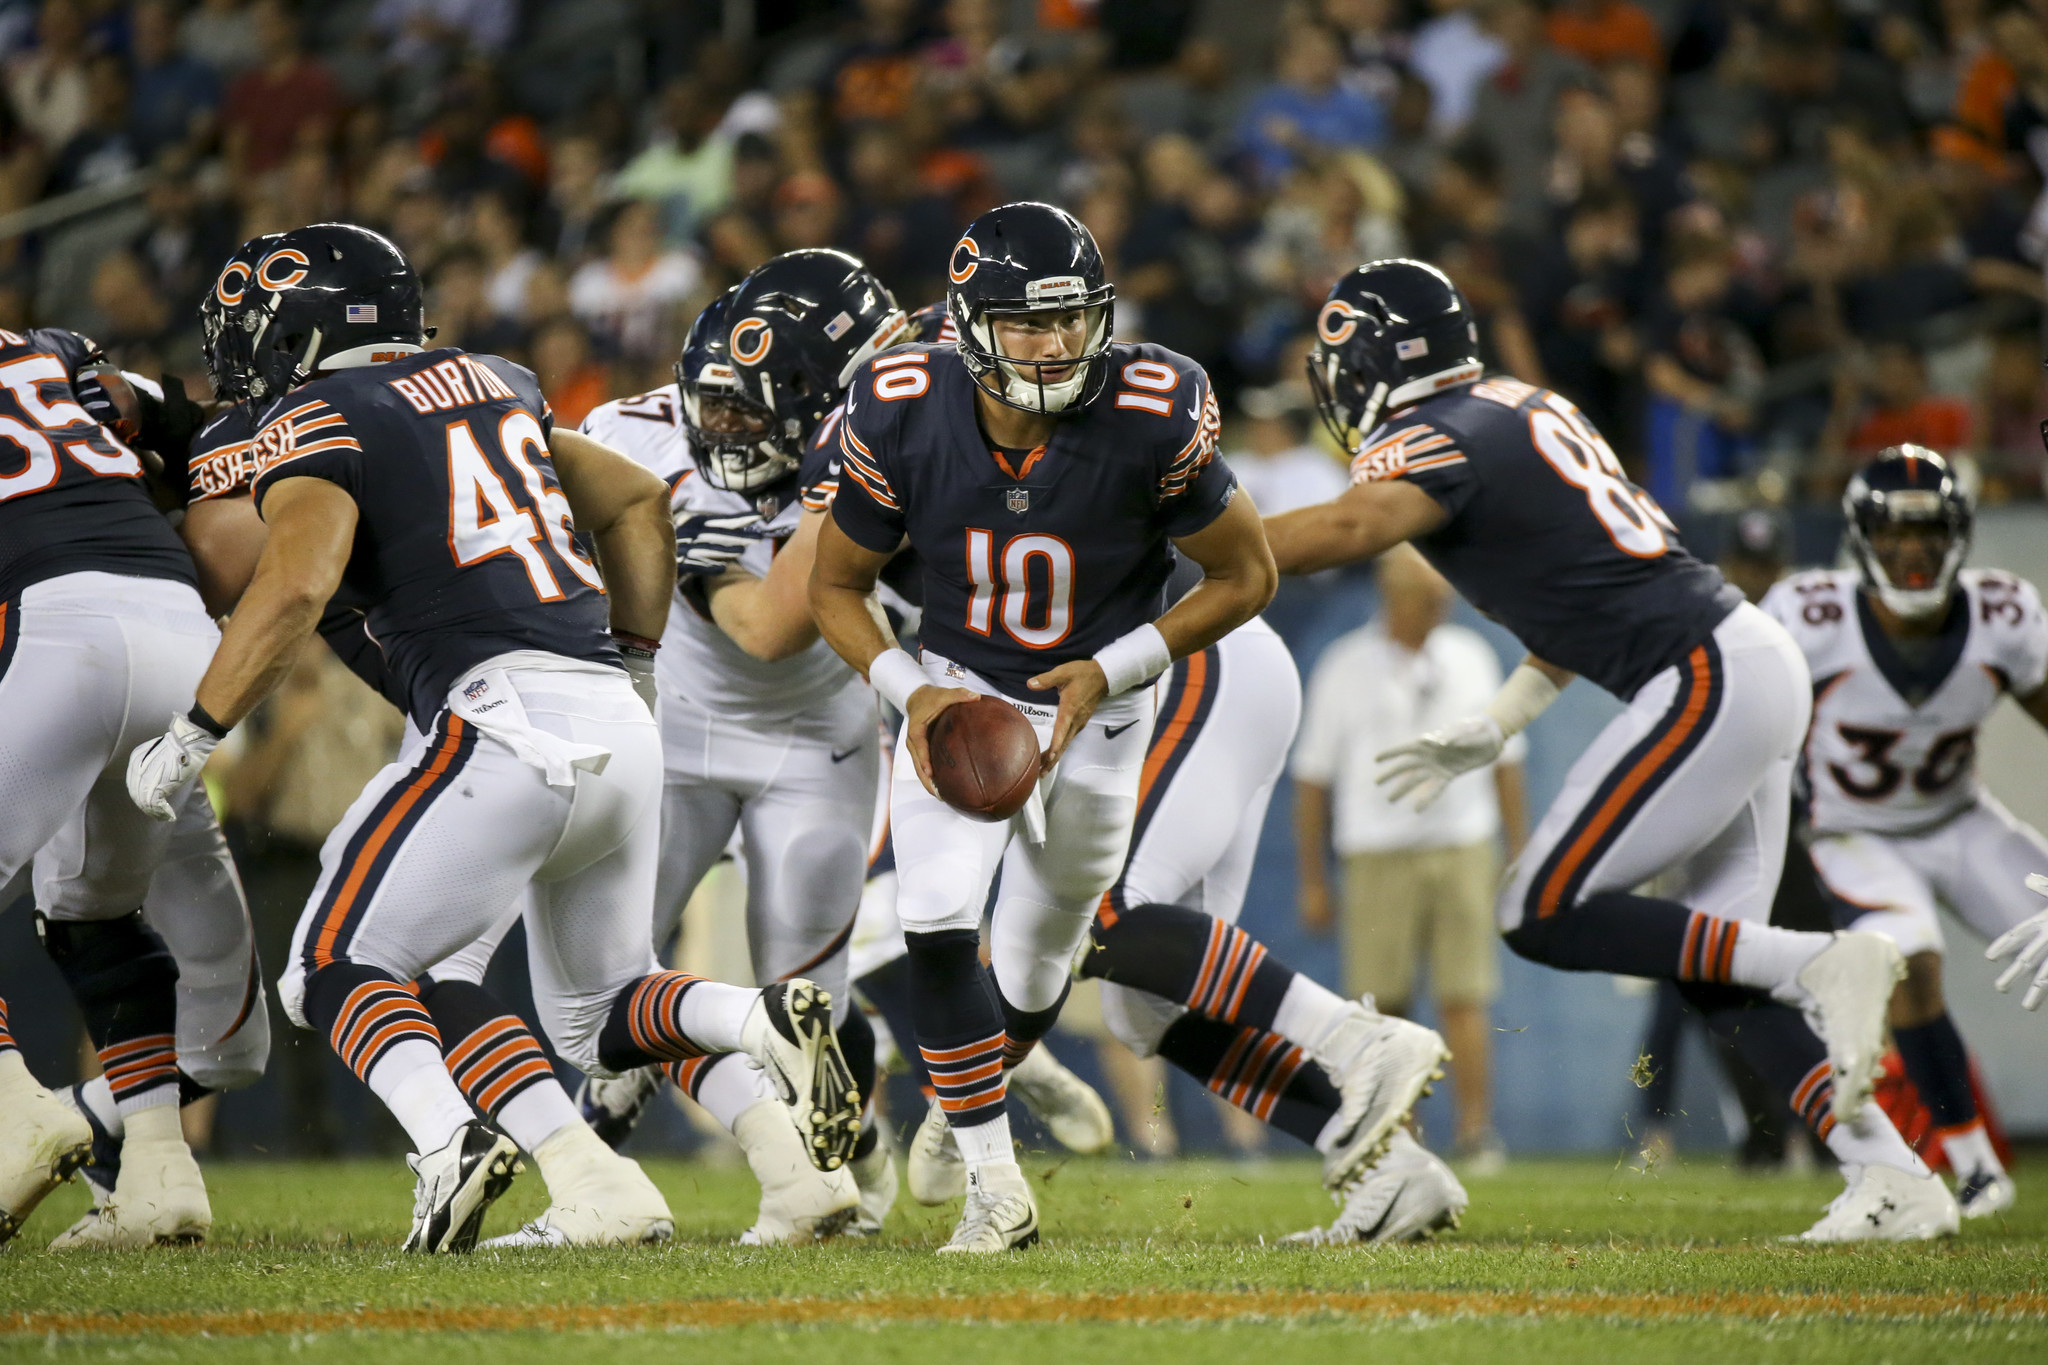 Ct-bears-mitch-trubisky-chicago-hope-spt-0813-20170812